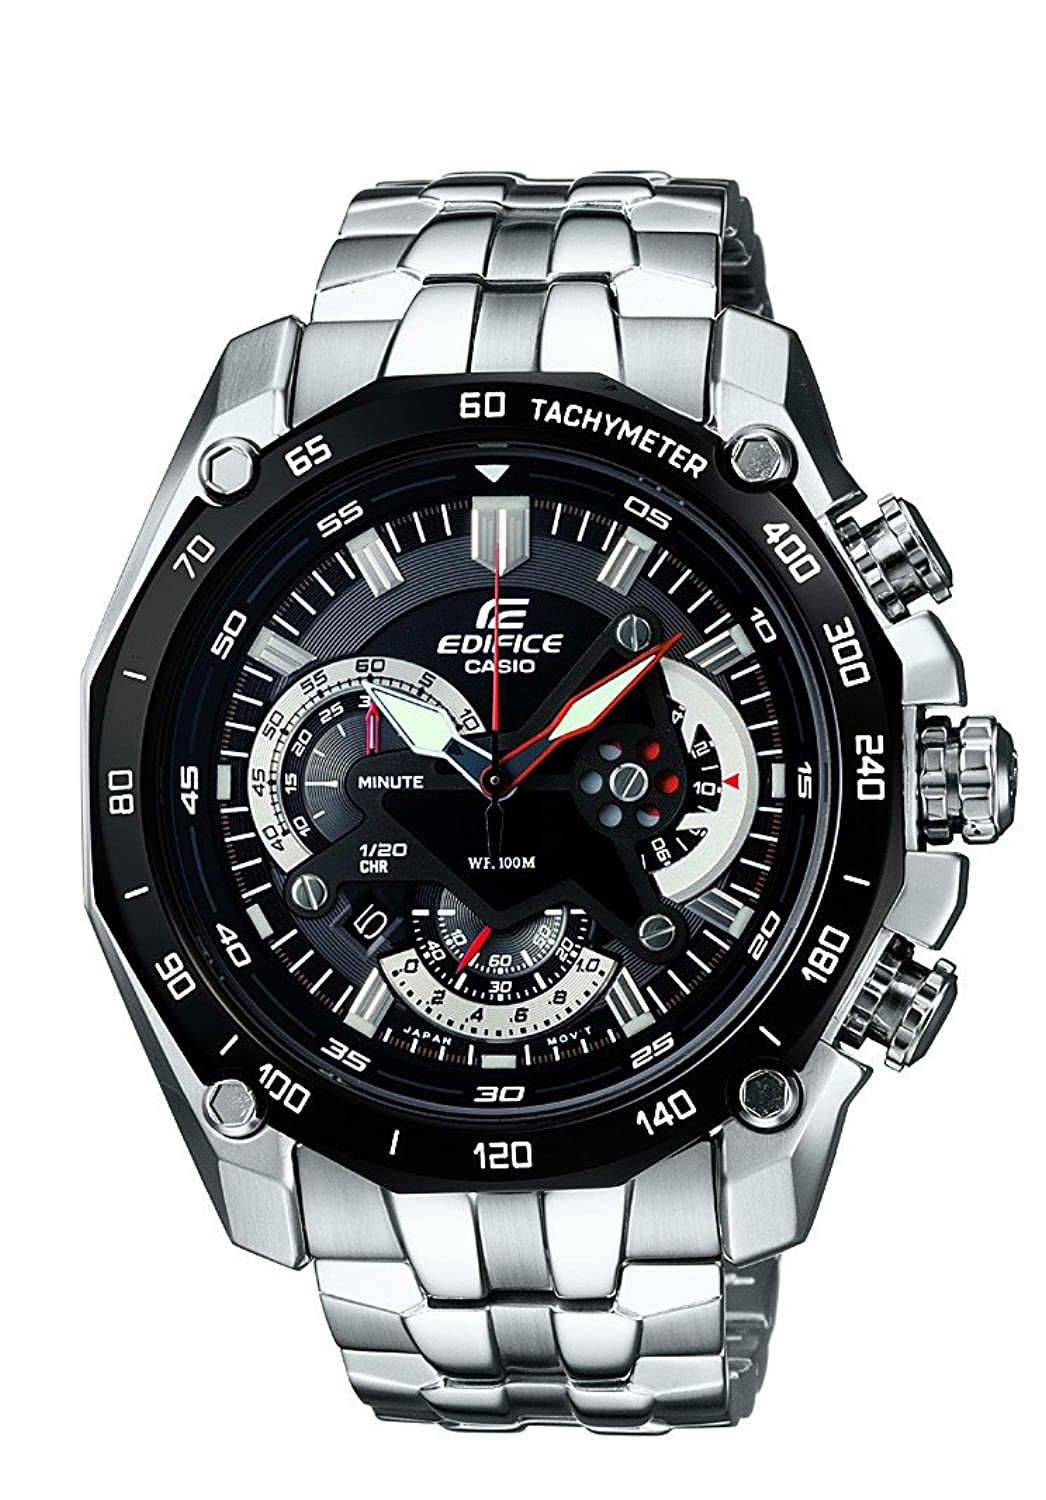 buy casio edifice tachymeter chronograph black dial men s watch buy casio edifice tachymeter chronograph black dial men s watch ef 550d 1avdf ed390 online at low prices in amazon in